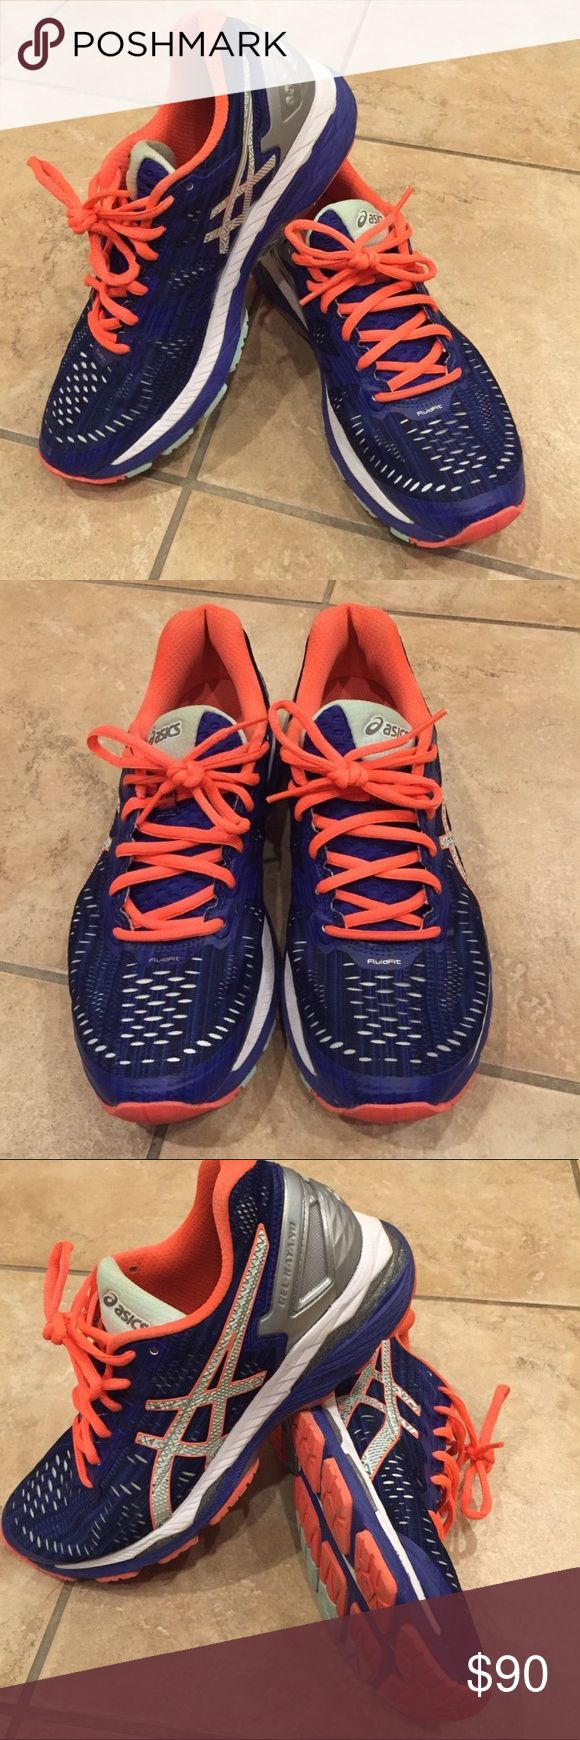 ASICS Gel Kayano 23 Woman's Sz 8.5 Up for sale is a pair of ASICS Gel Kayano 23 size 8.5. They are in fabulous condition and were only worn indoors for a dance class. Asics Shoes Sneakers